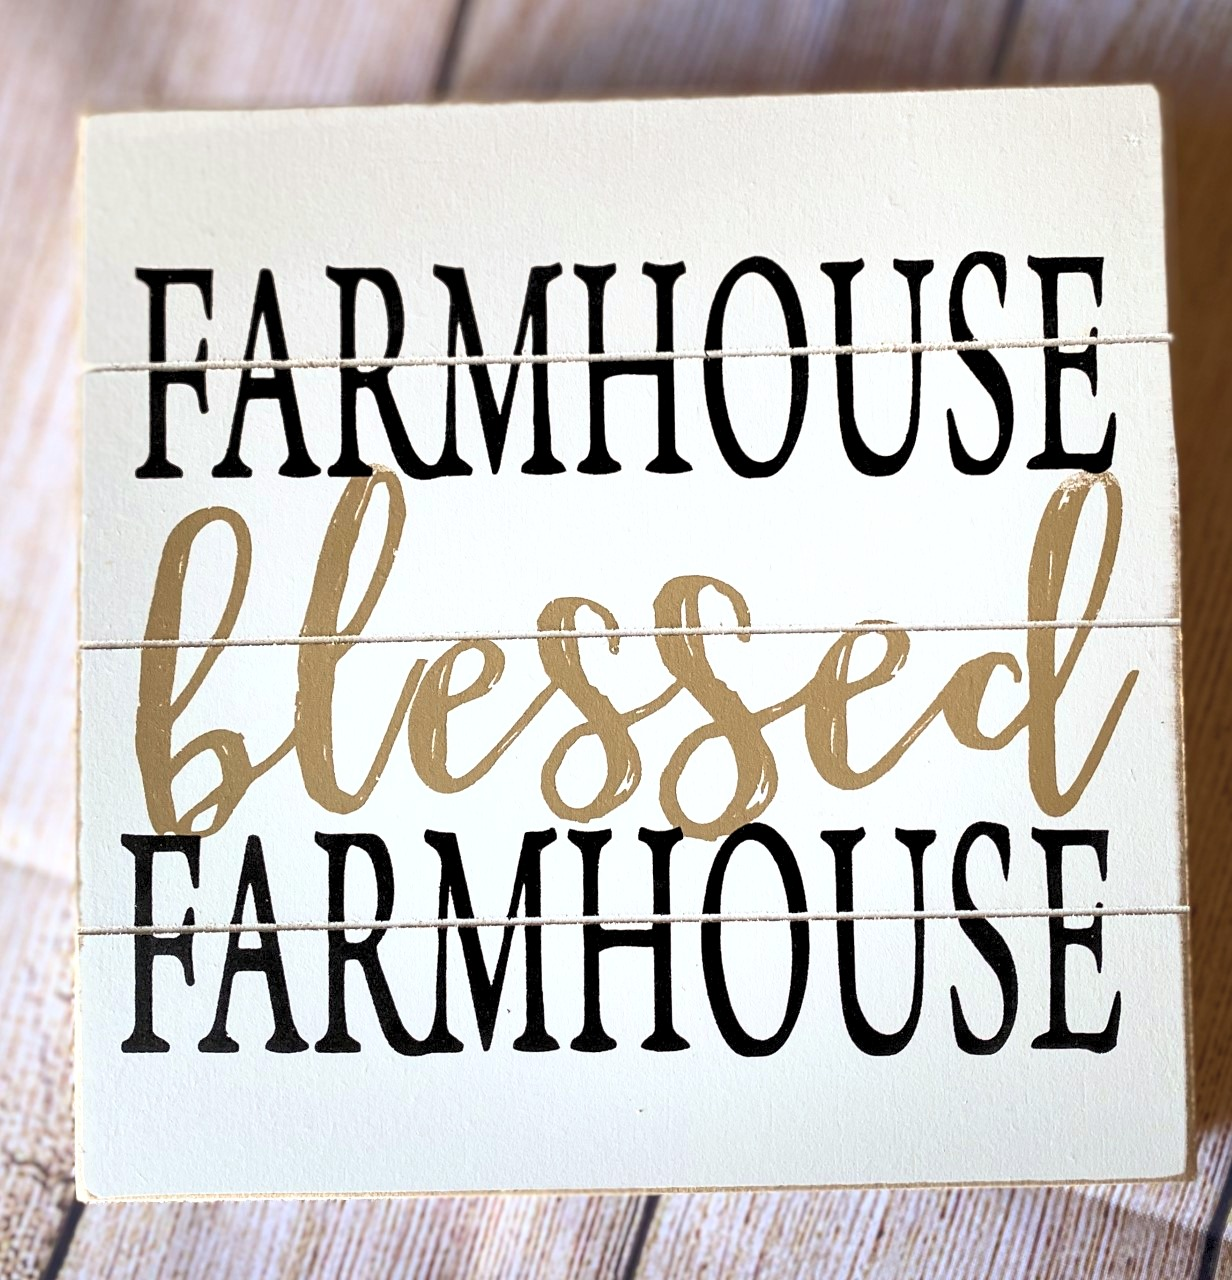 farmhouse%20blessed%20farmhouse_edited